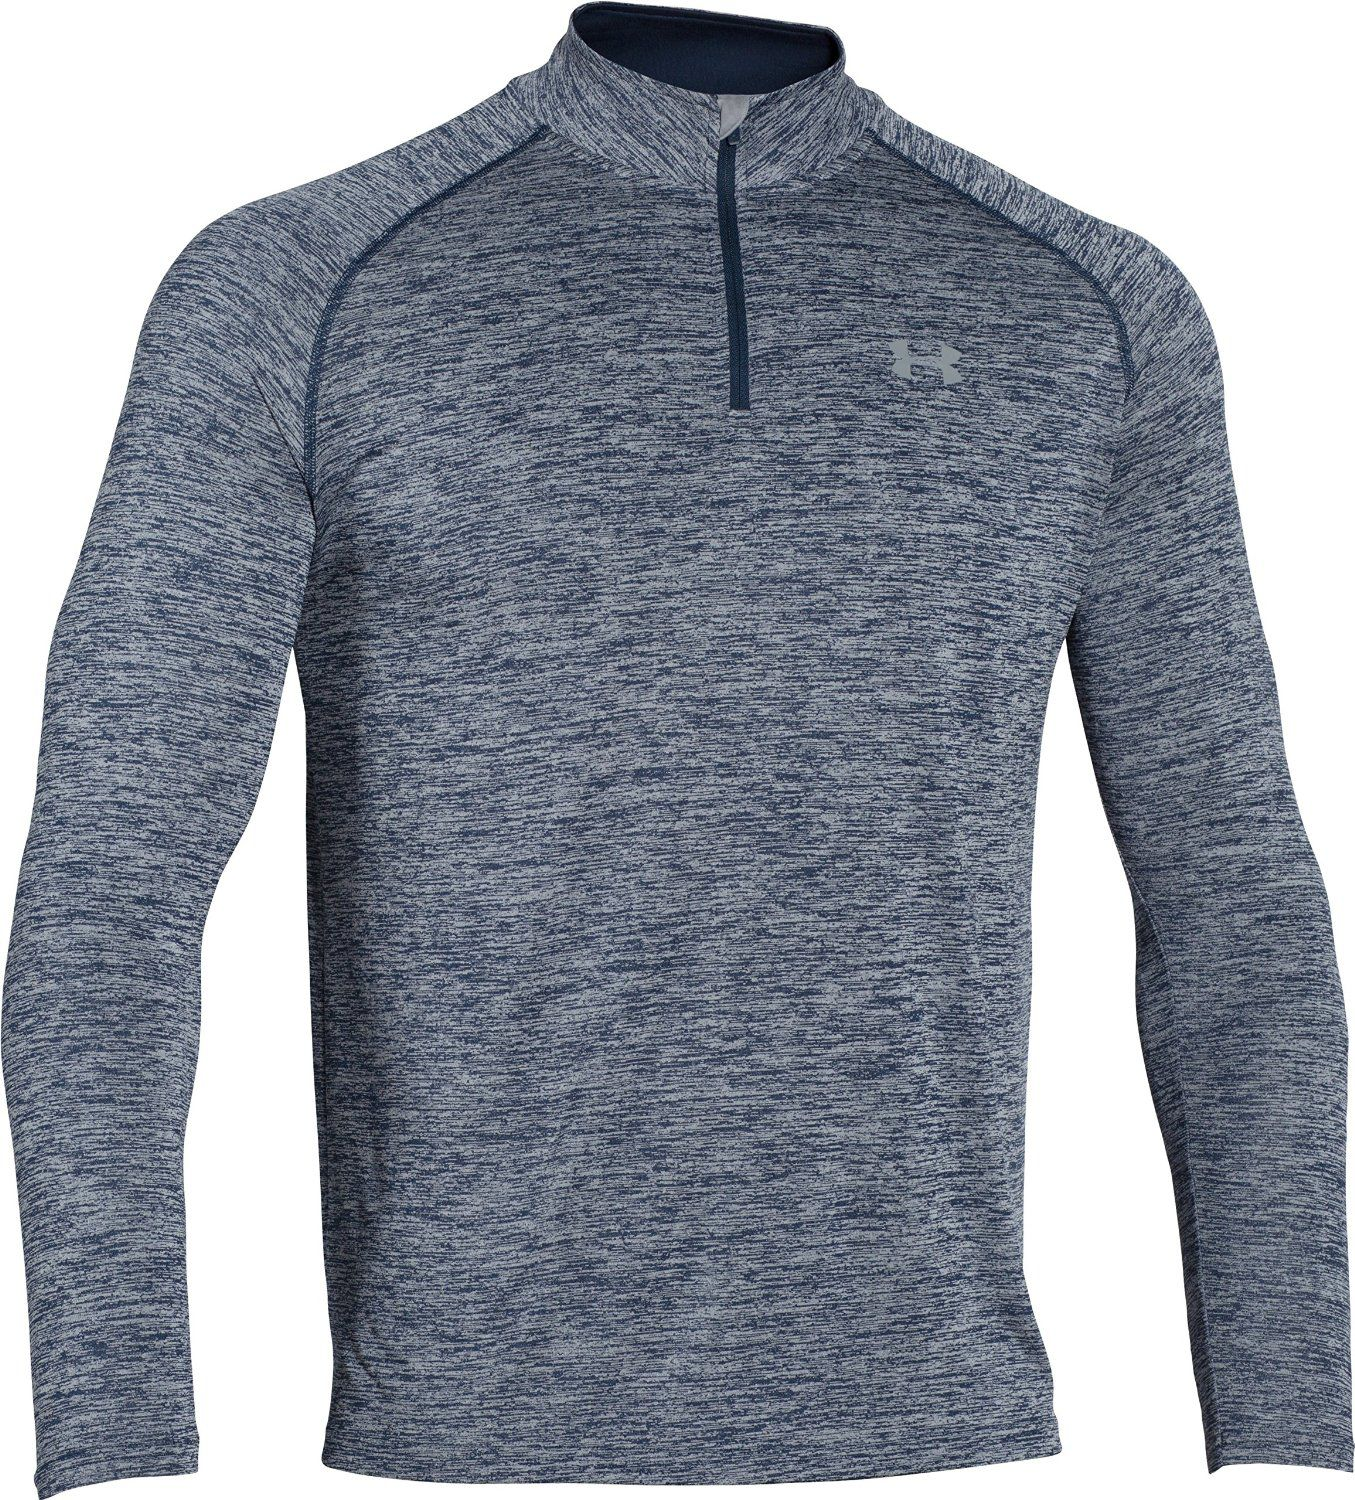 0f7e823e20d The 8 Best Men s Cold Weather Running Clothes for 2019